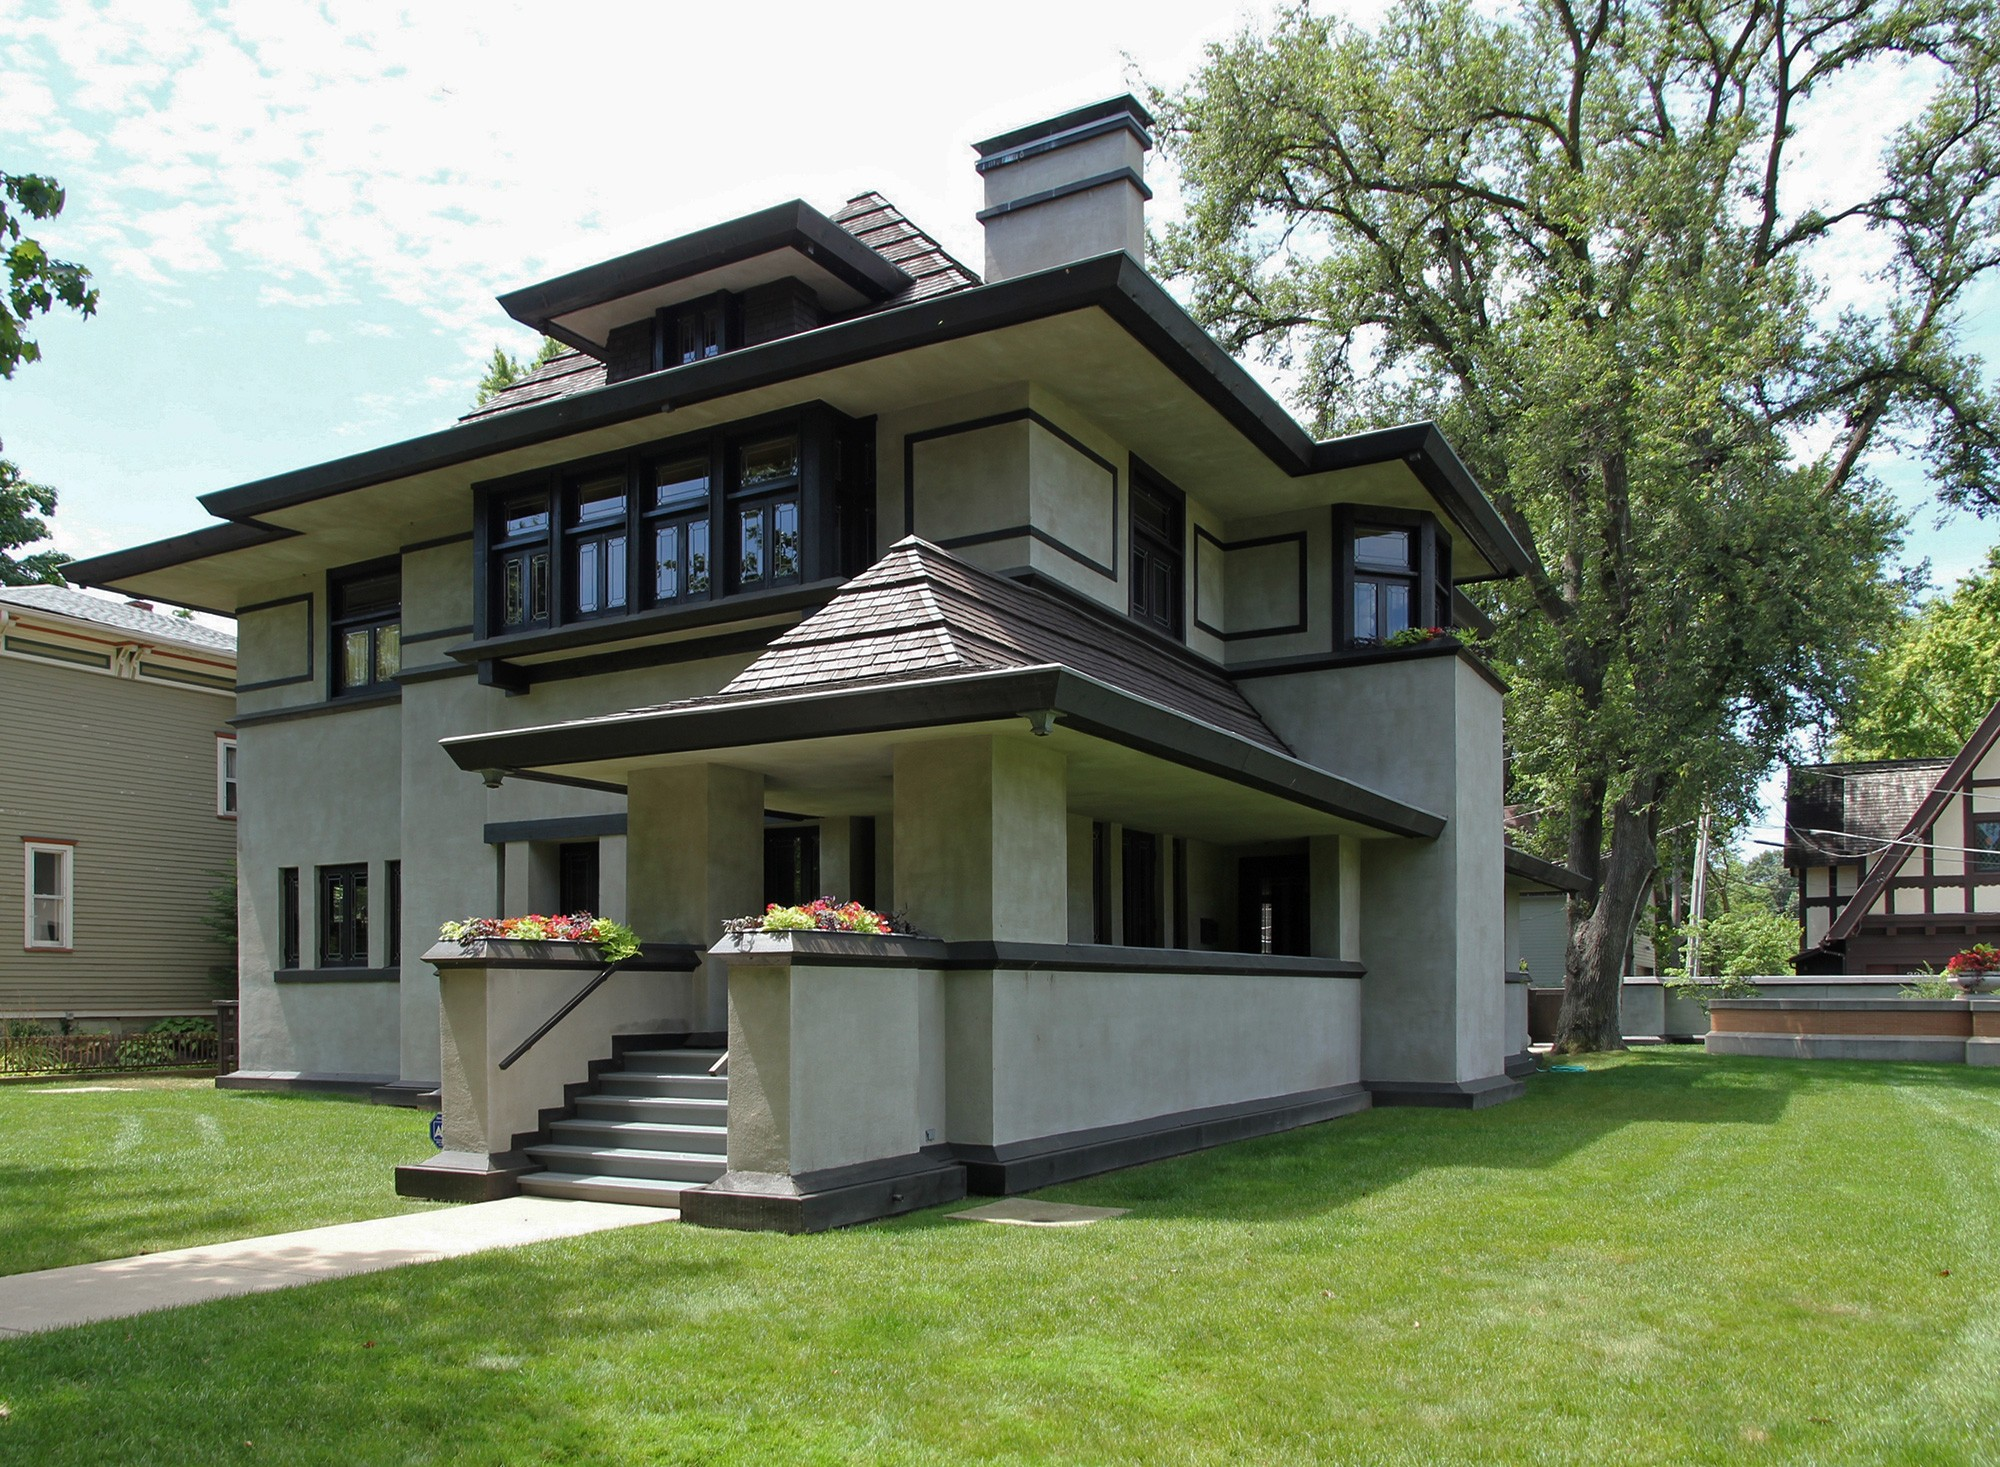 Frank lloyd wright neighborhoods by bus tours chicago for Frank lloyd wright house design